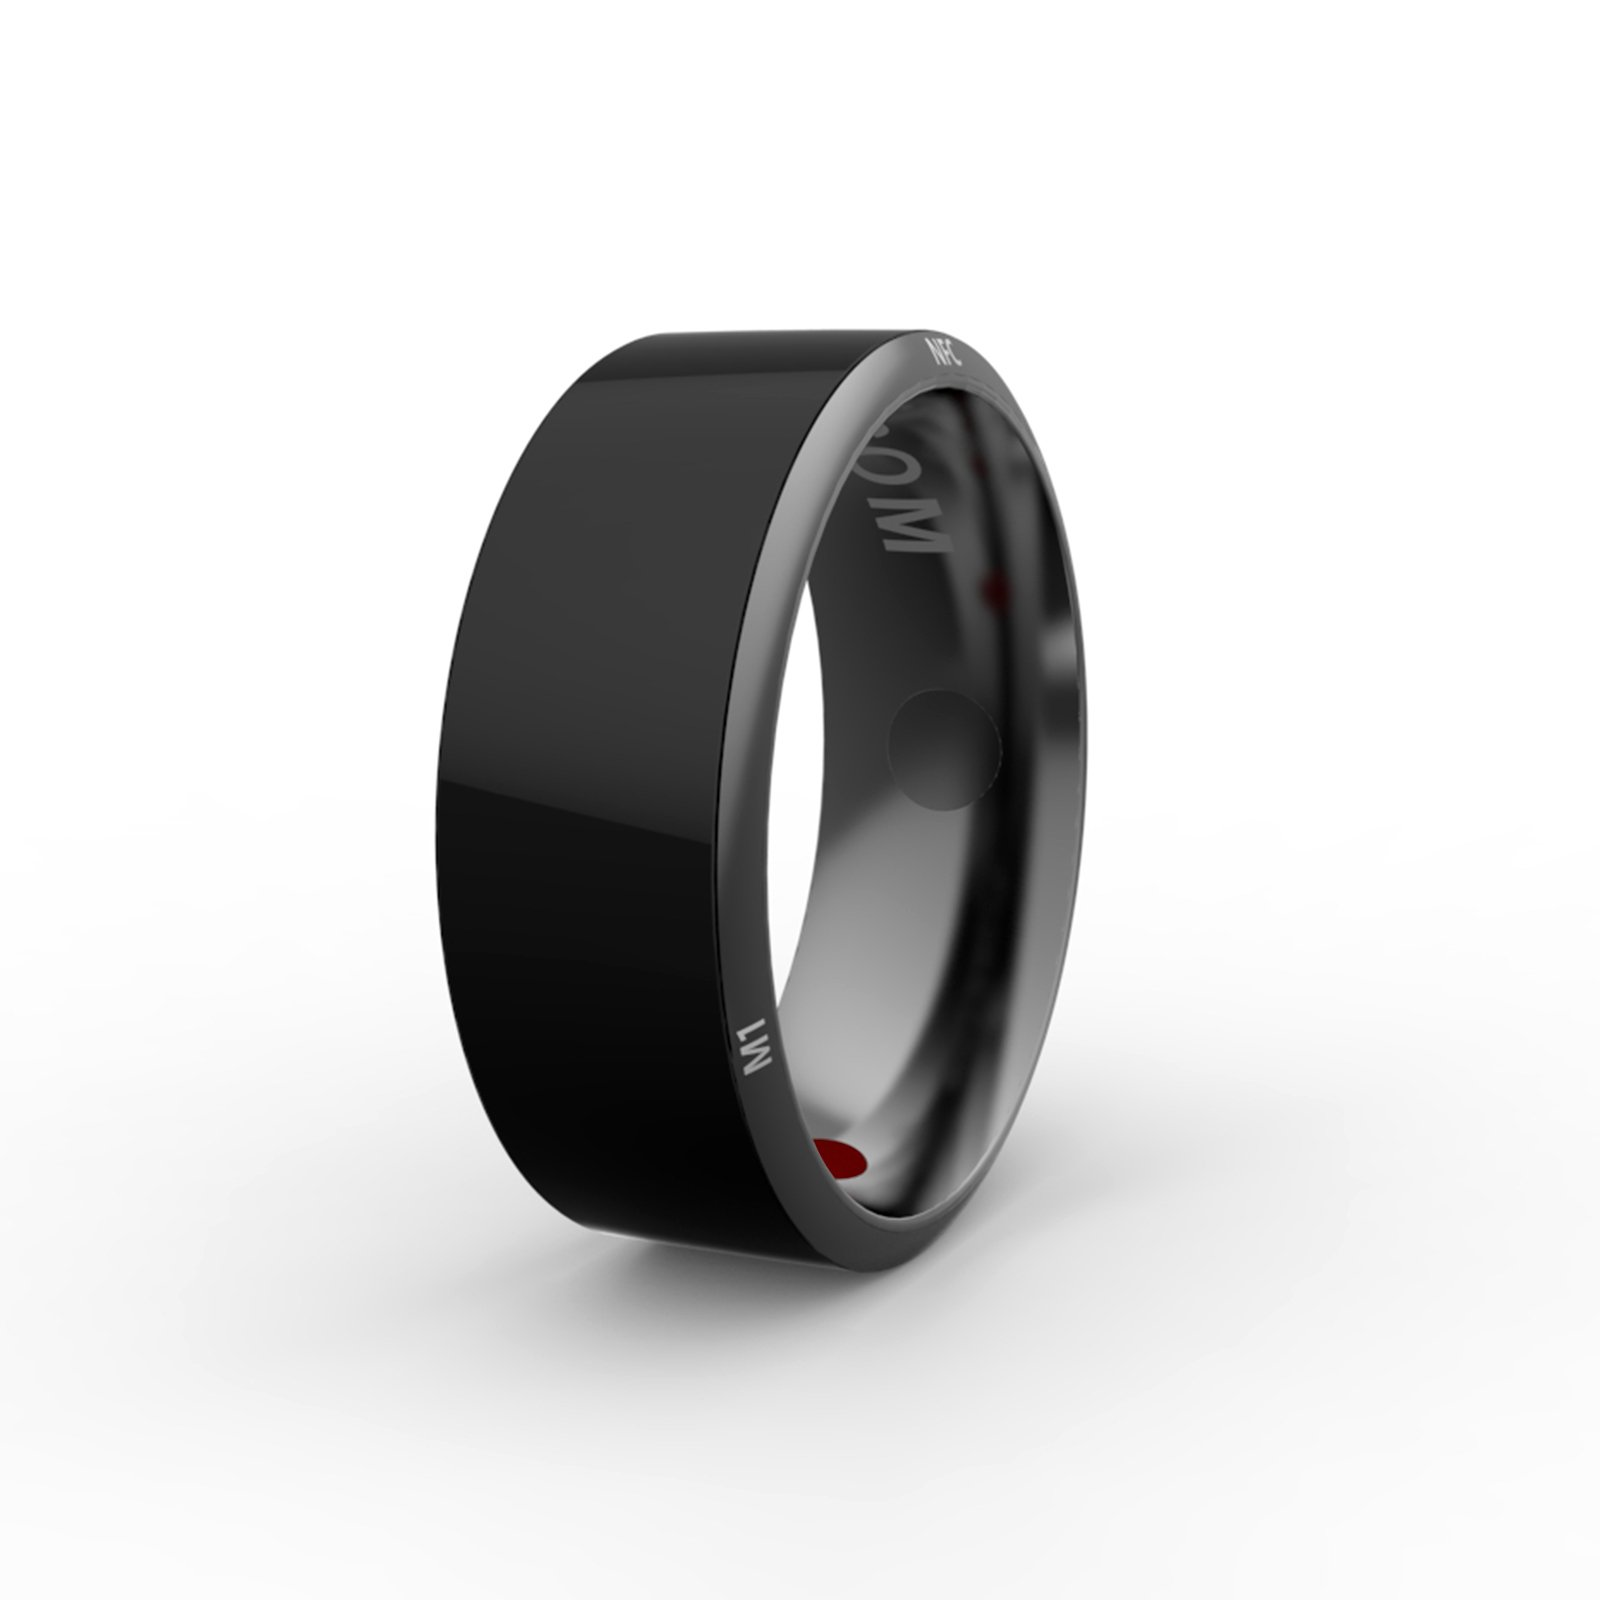 R3F NFC Smart Ring Electronics Mobile Phone Accessories compatible with Android WindowsPhone SmartRing Smart Watch